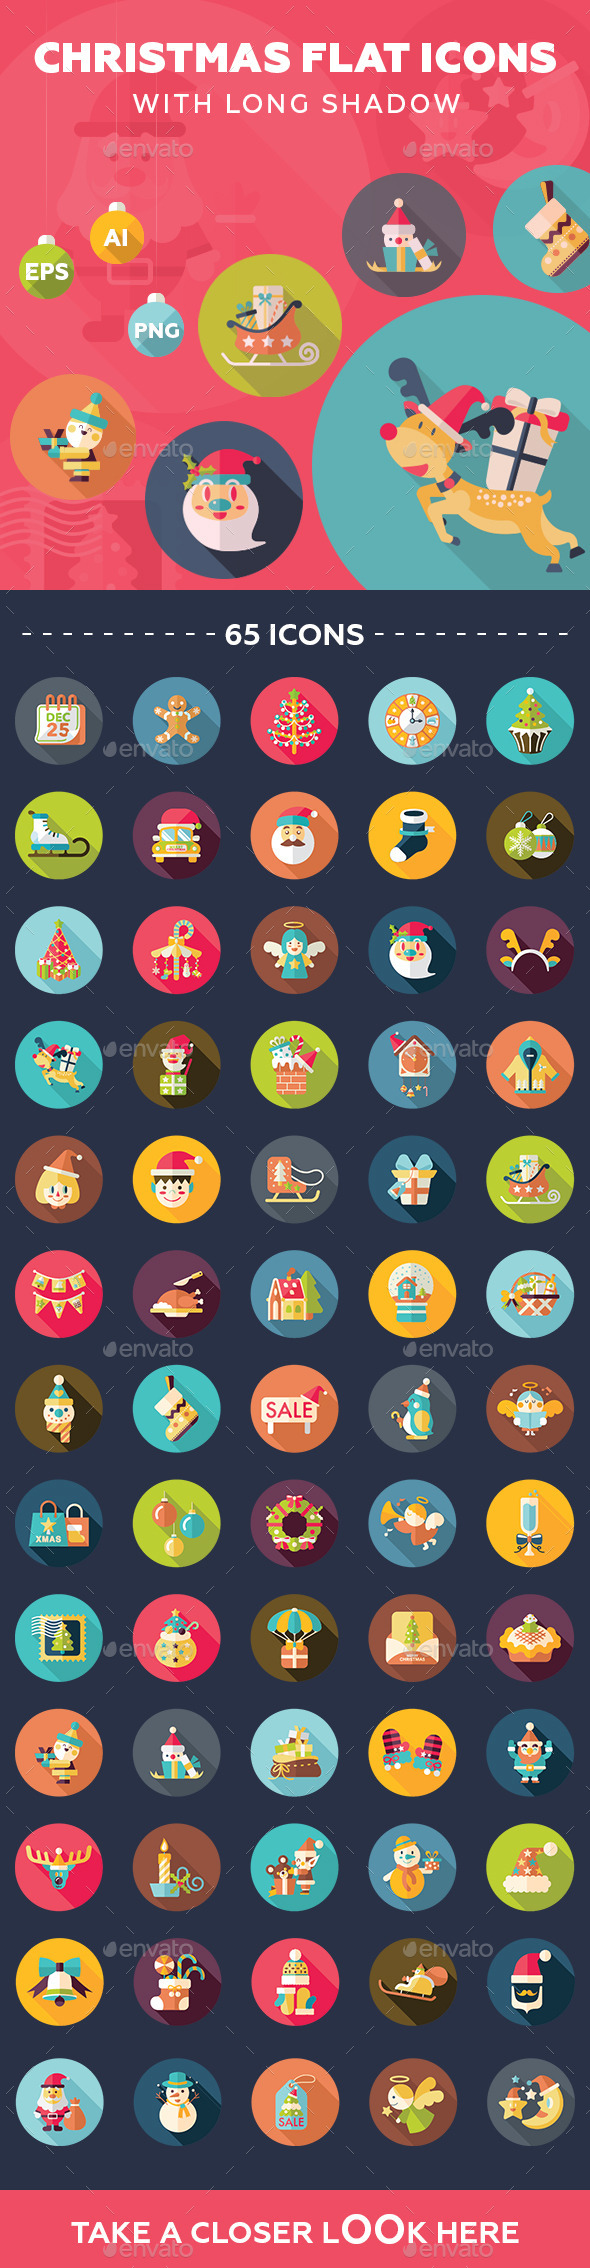 65 Christmas Flat Icons - Seasonal Icons